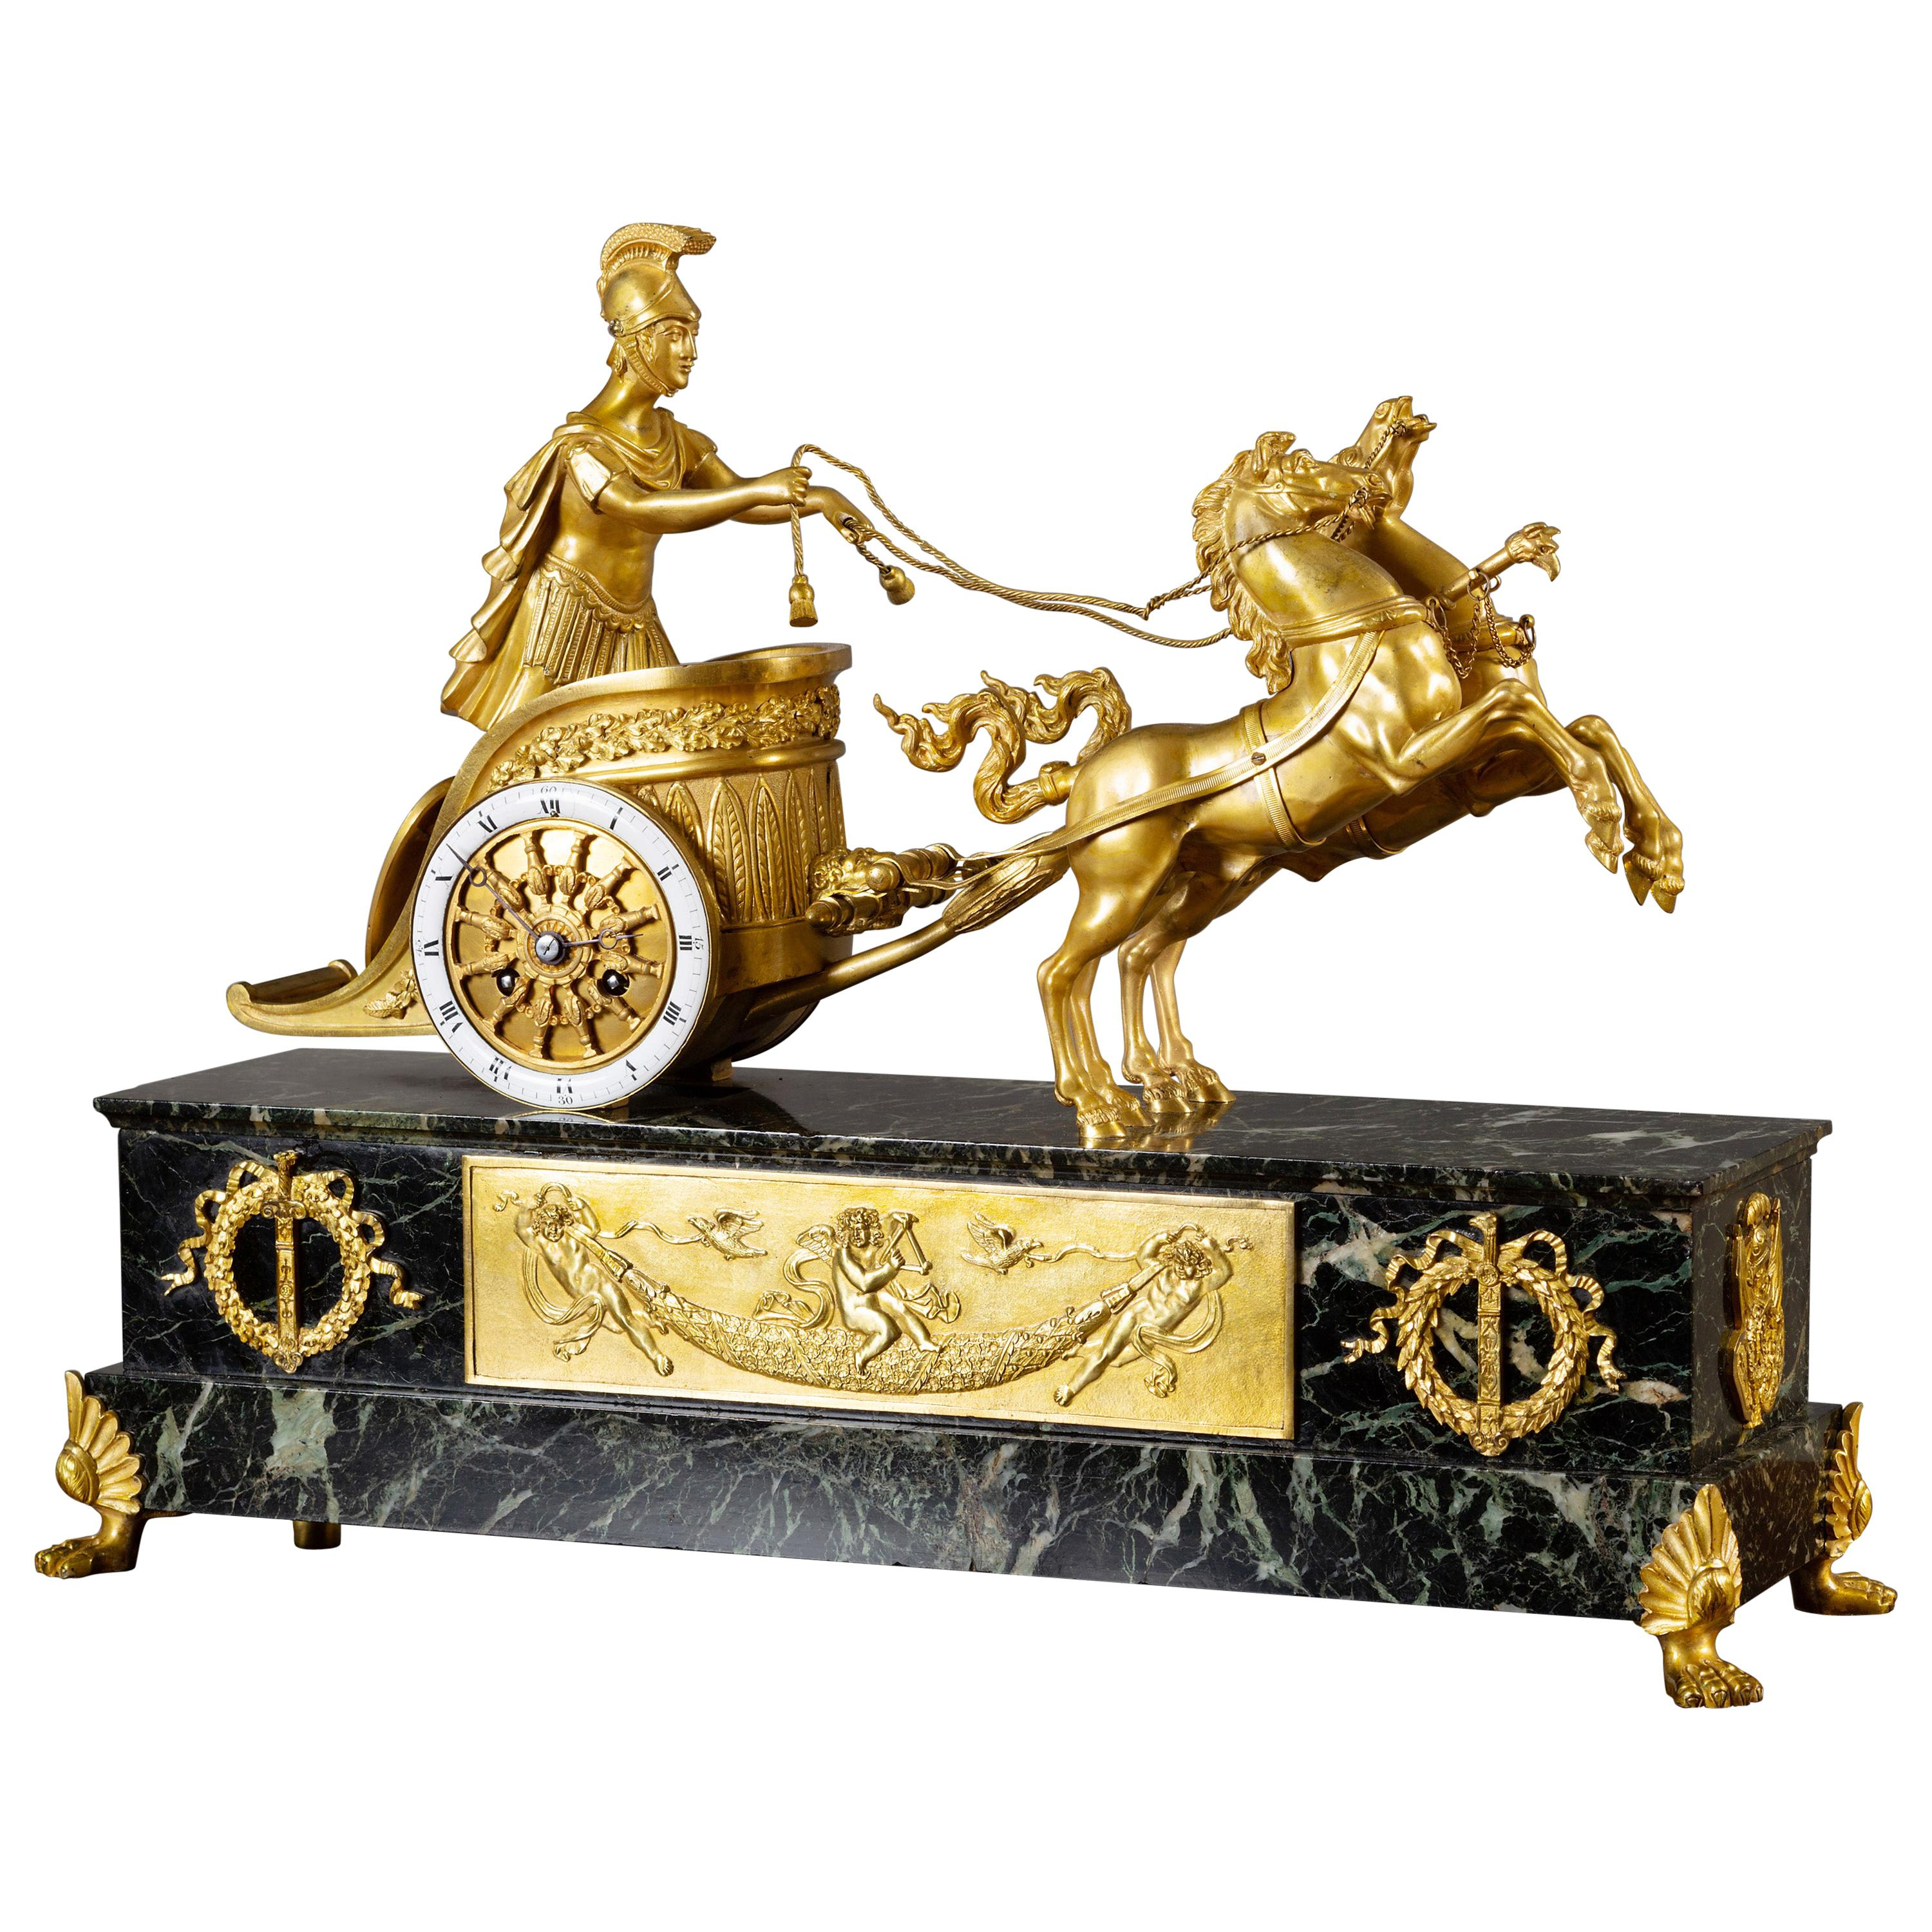 French Ormolu Roman Chariot Clock by Vincenti